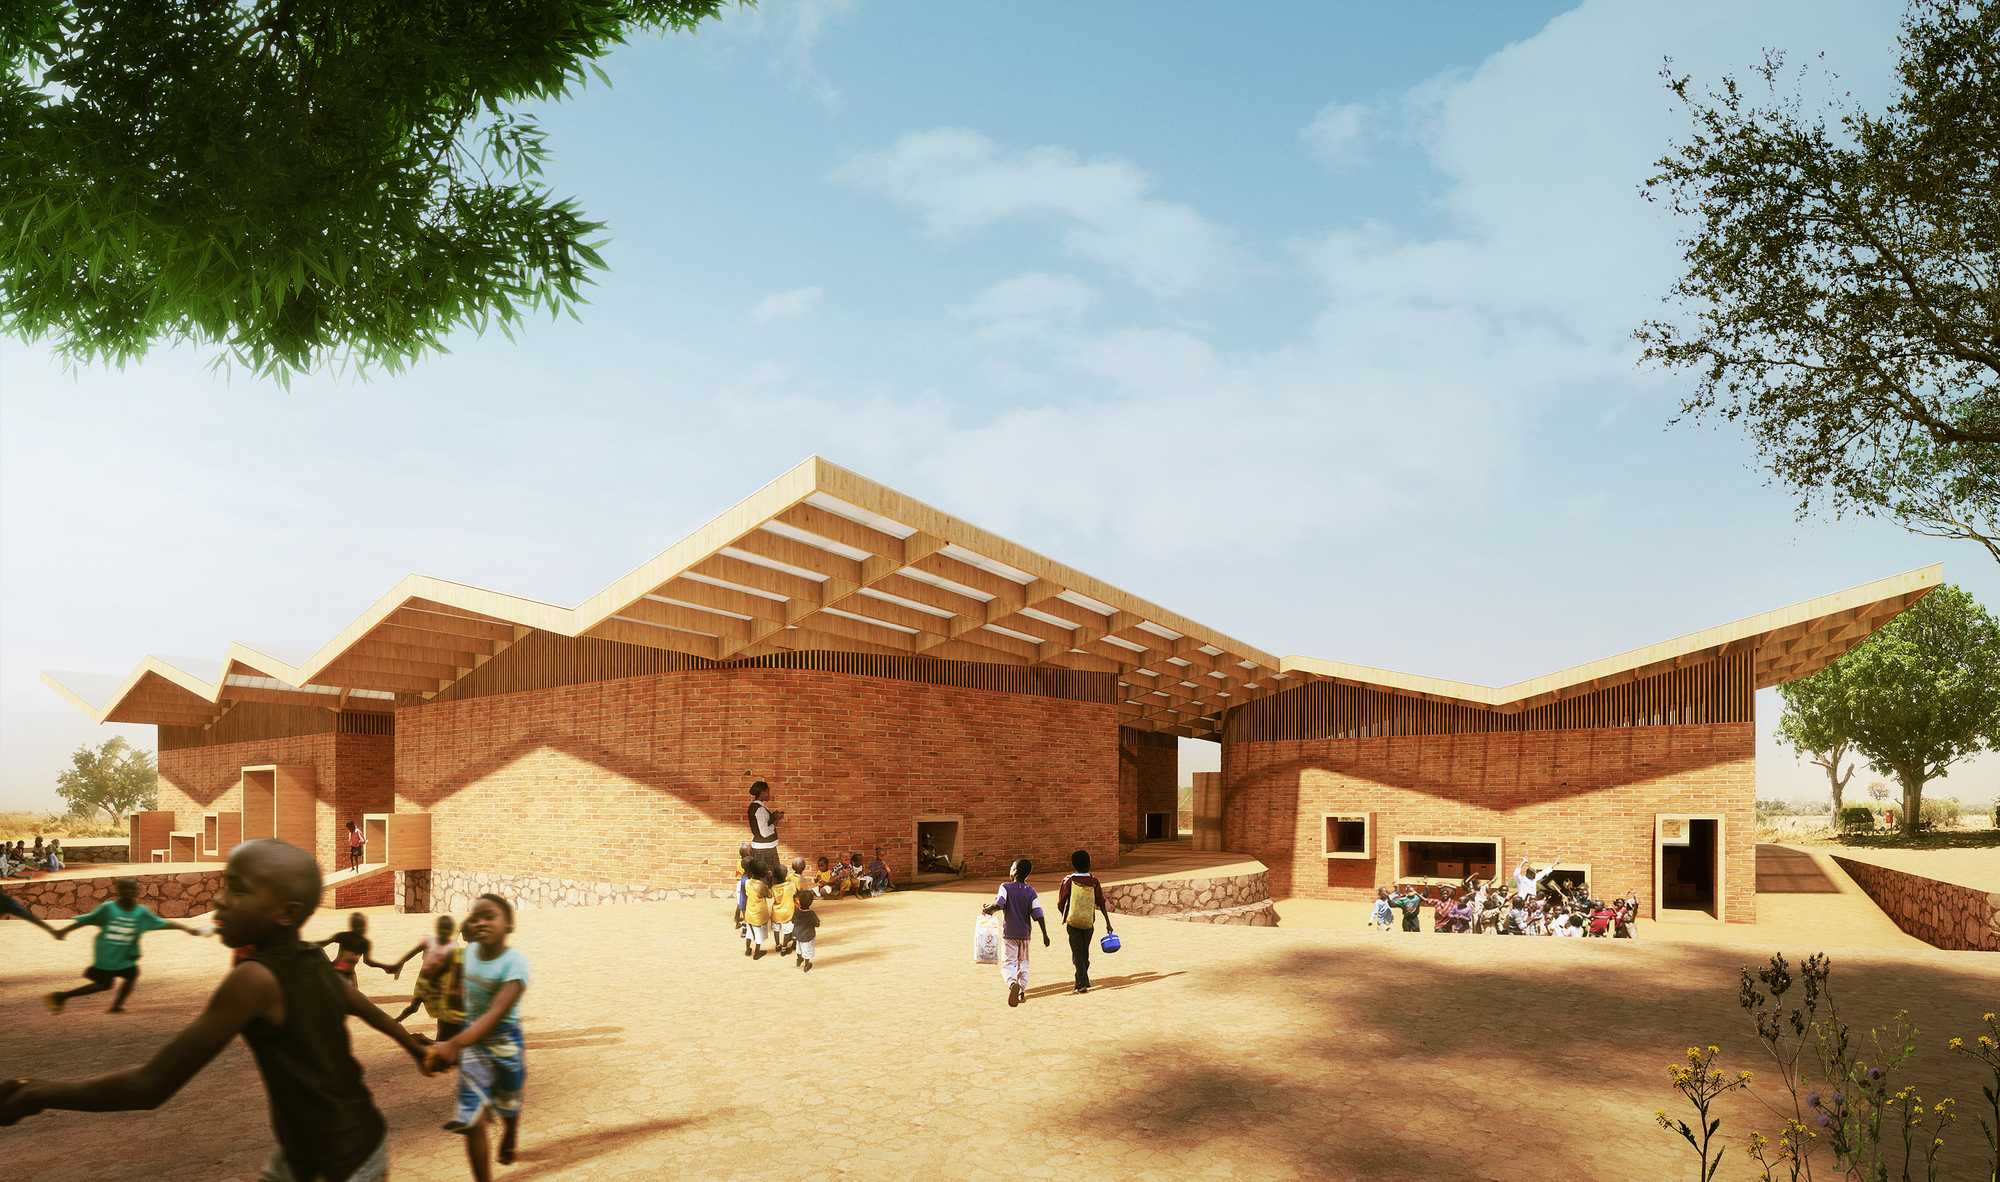 Francis k r designs education campus for mama sarah obama for Architect education